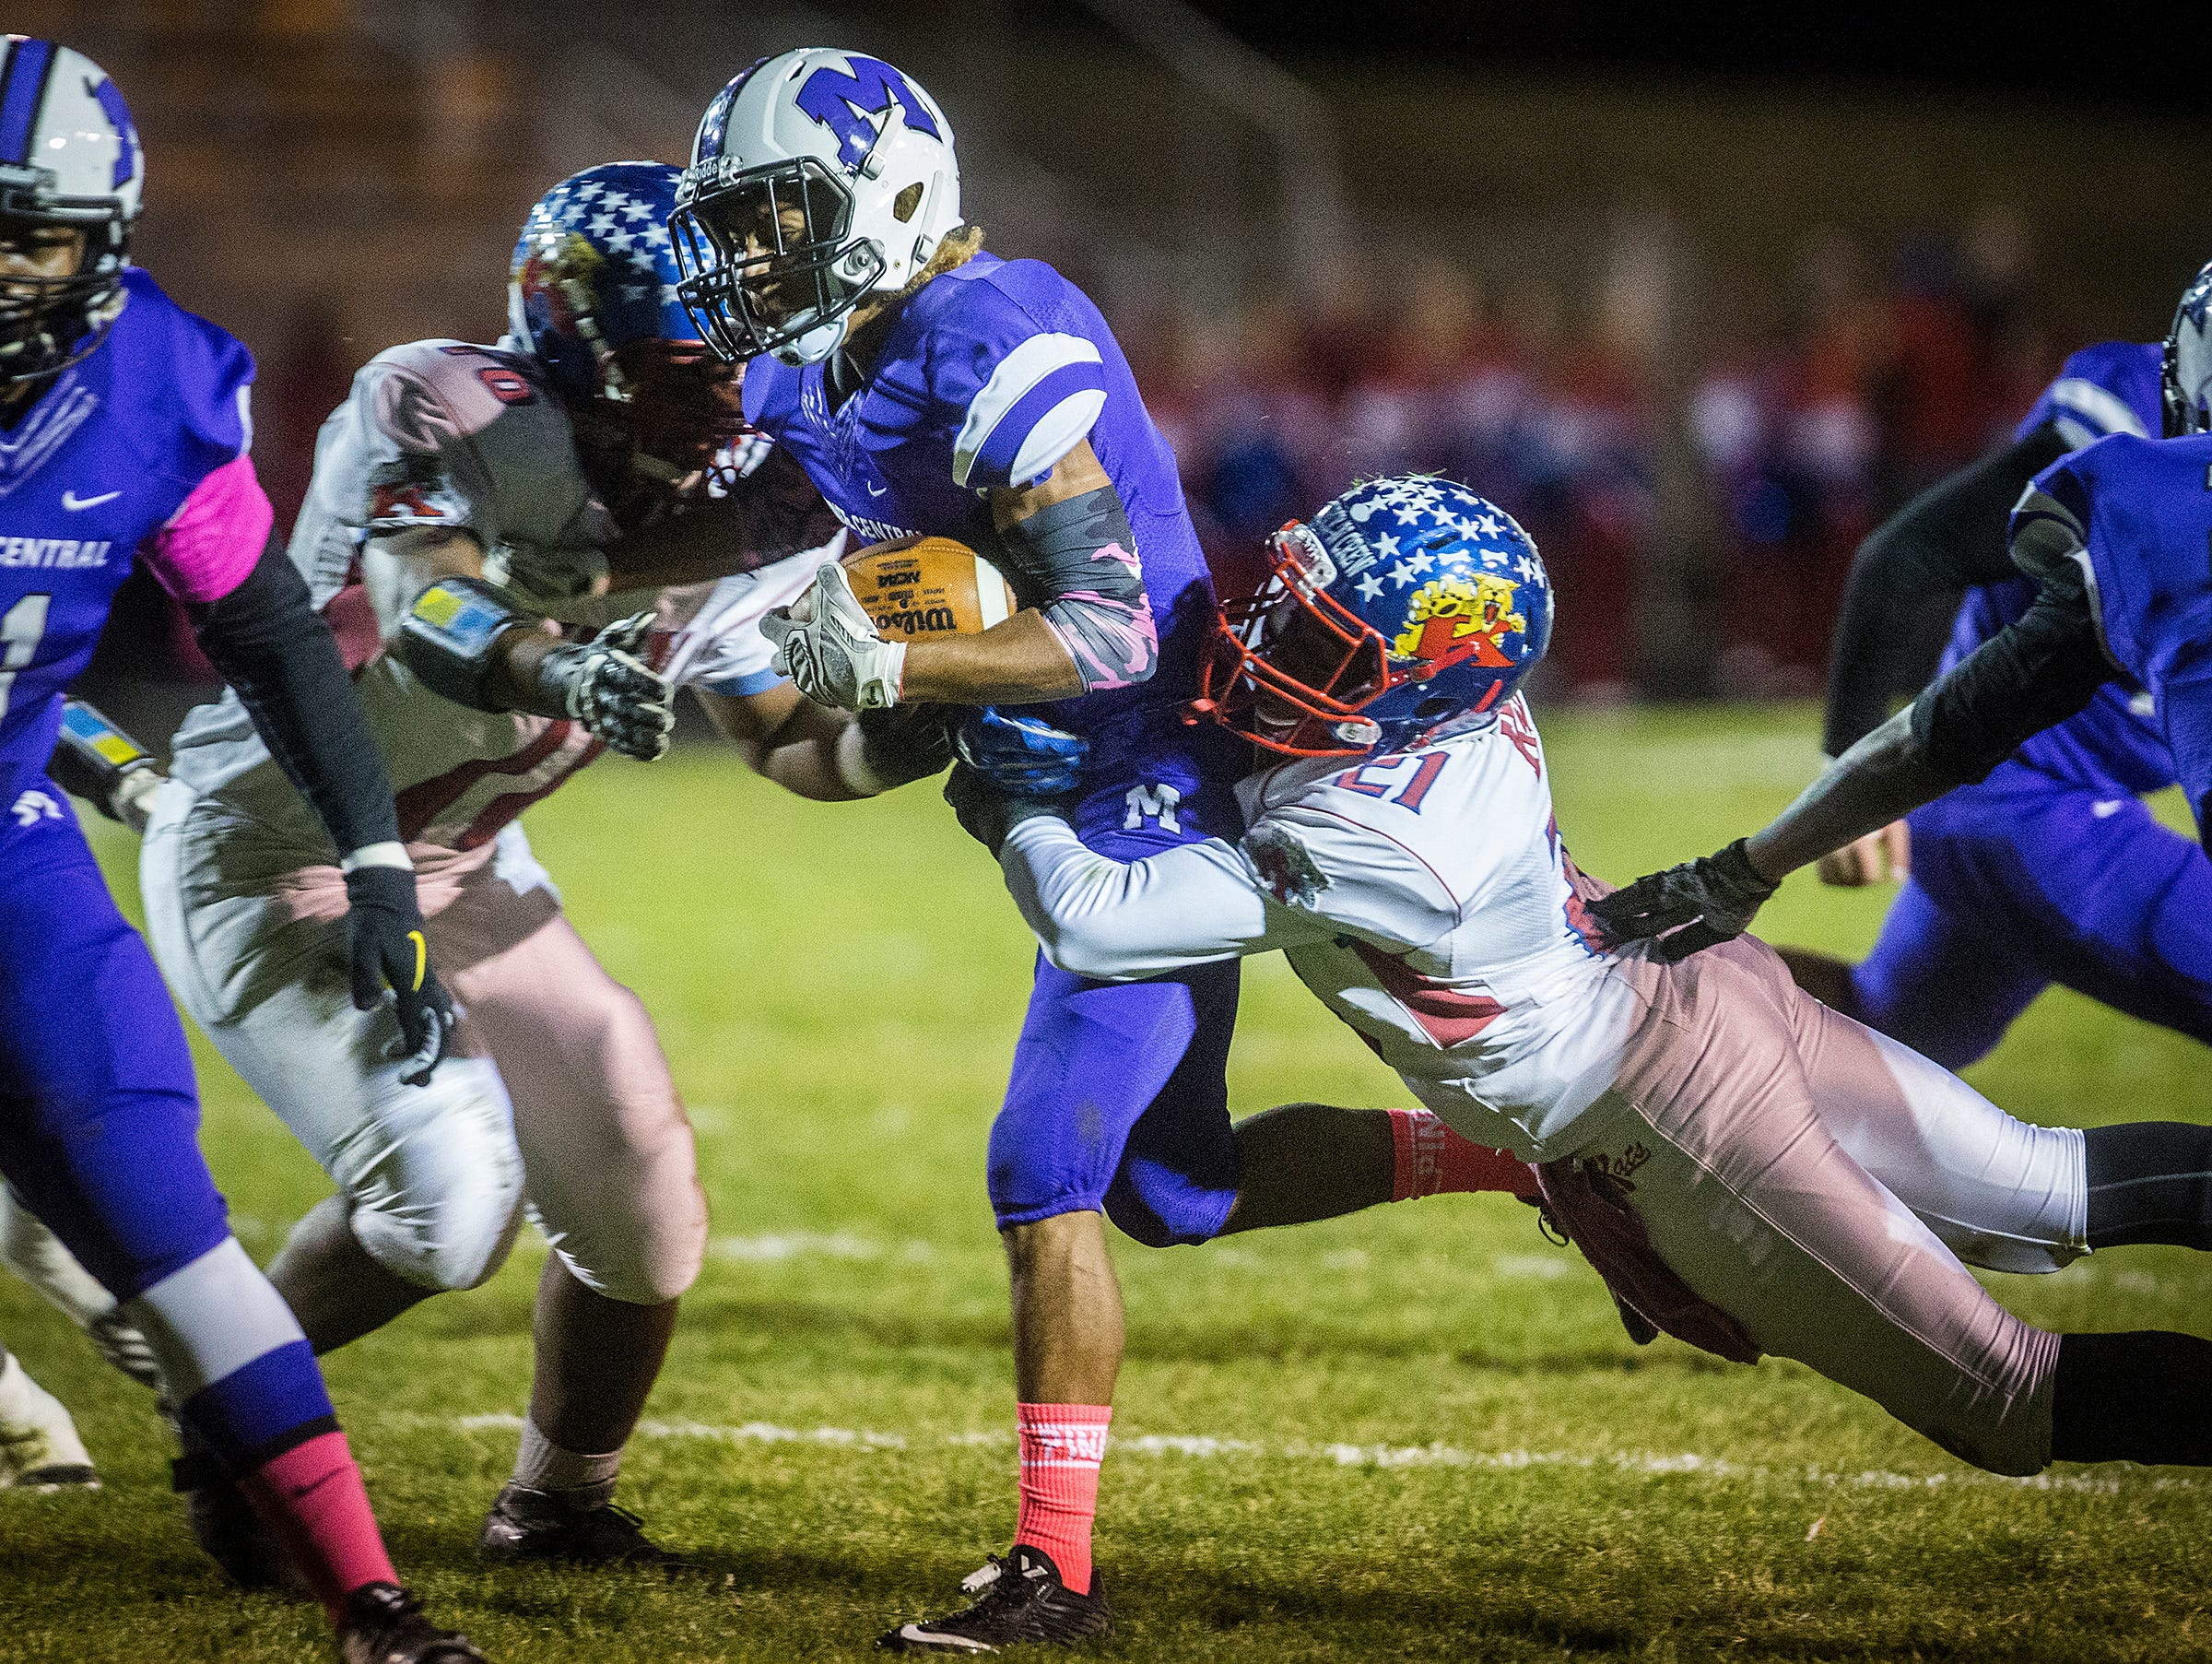 Central's Exuse Brown fights past Kokomo's defense during their game at Central Friday, Oct. 30, 2015.